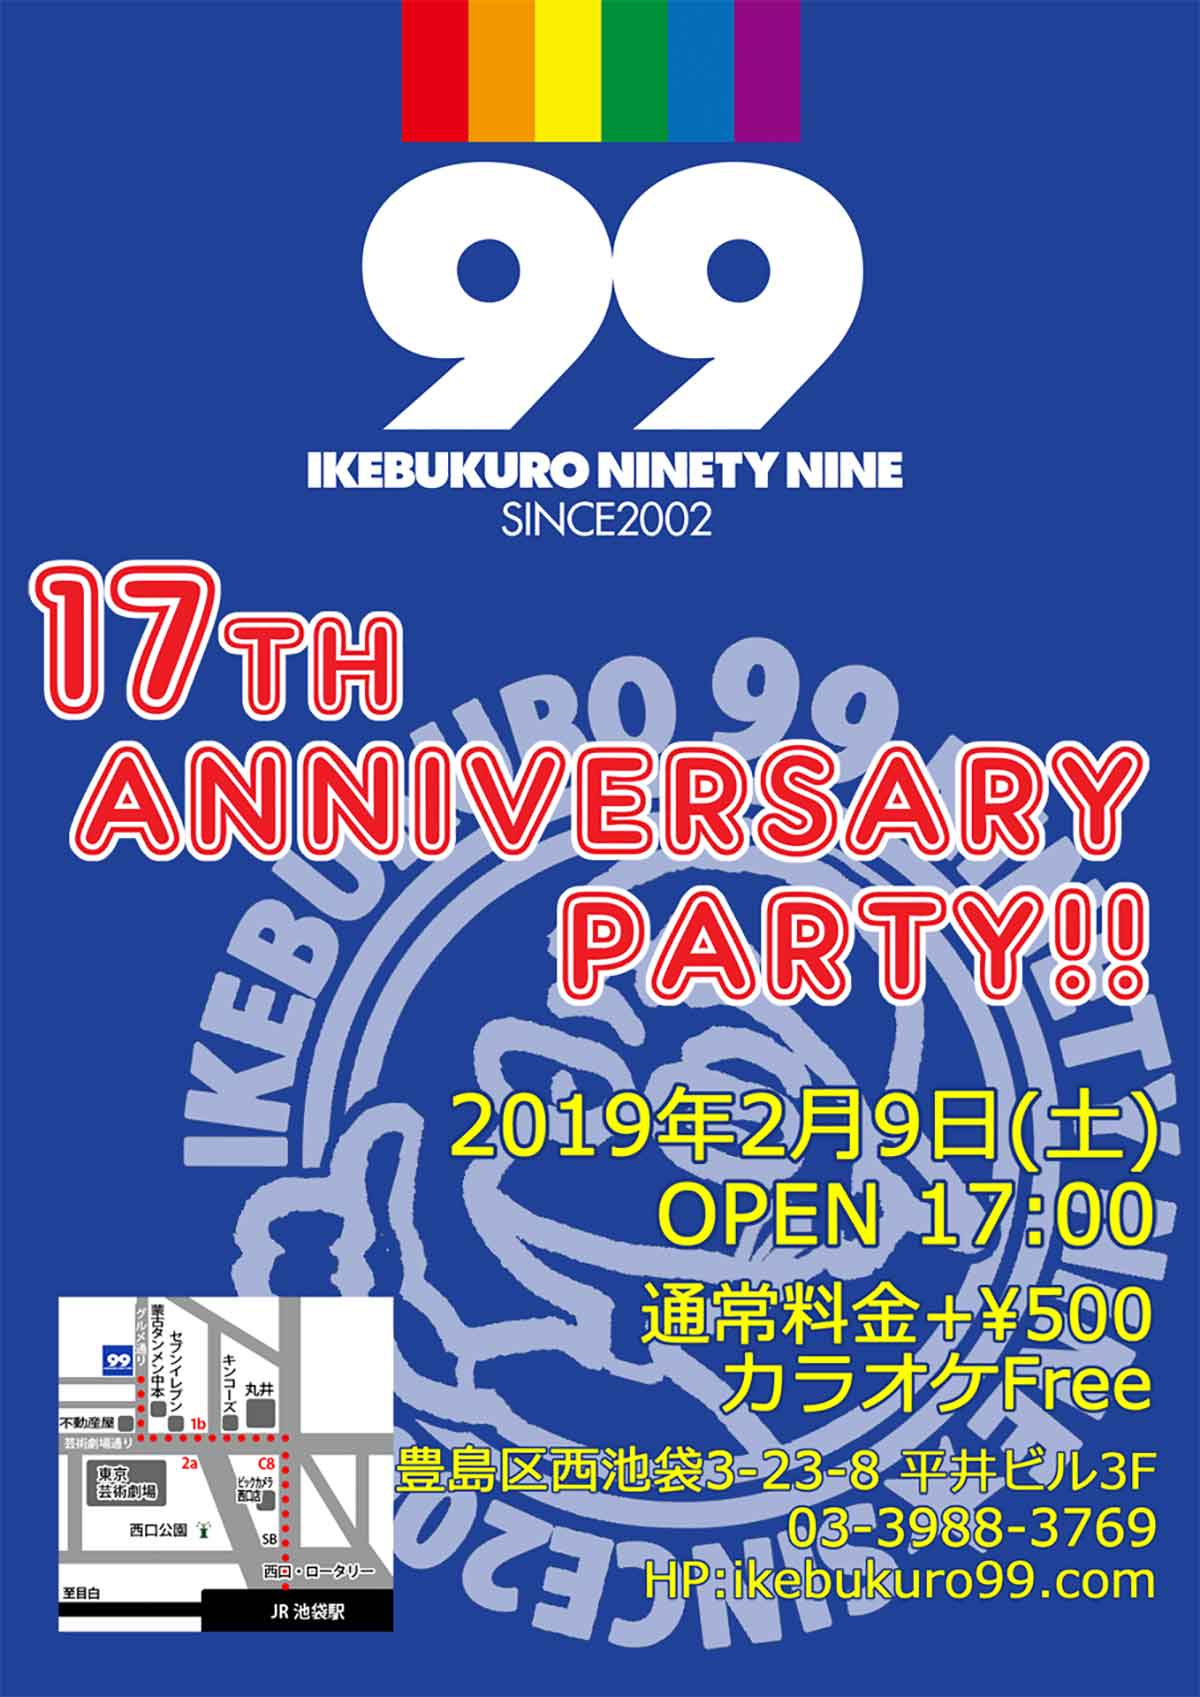 17th Anniversary PARTY!!